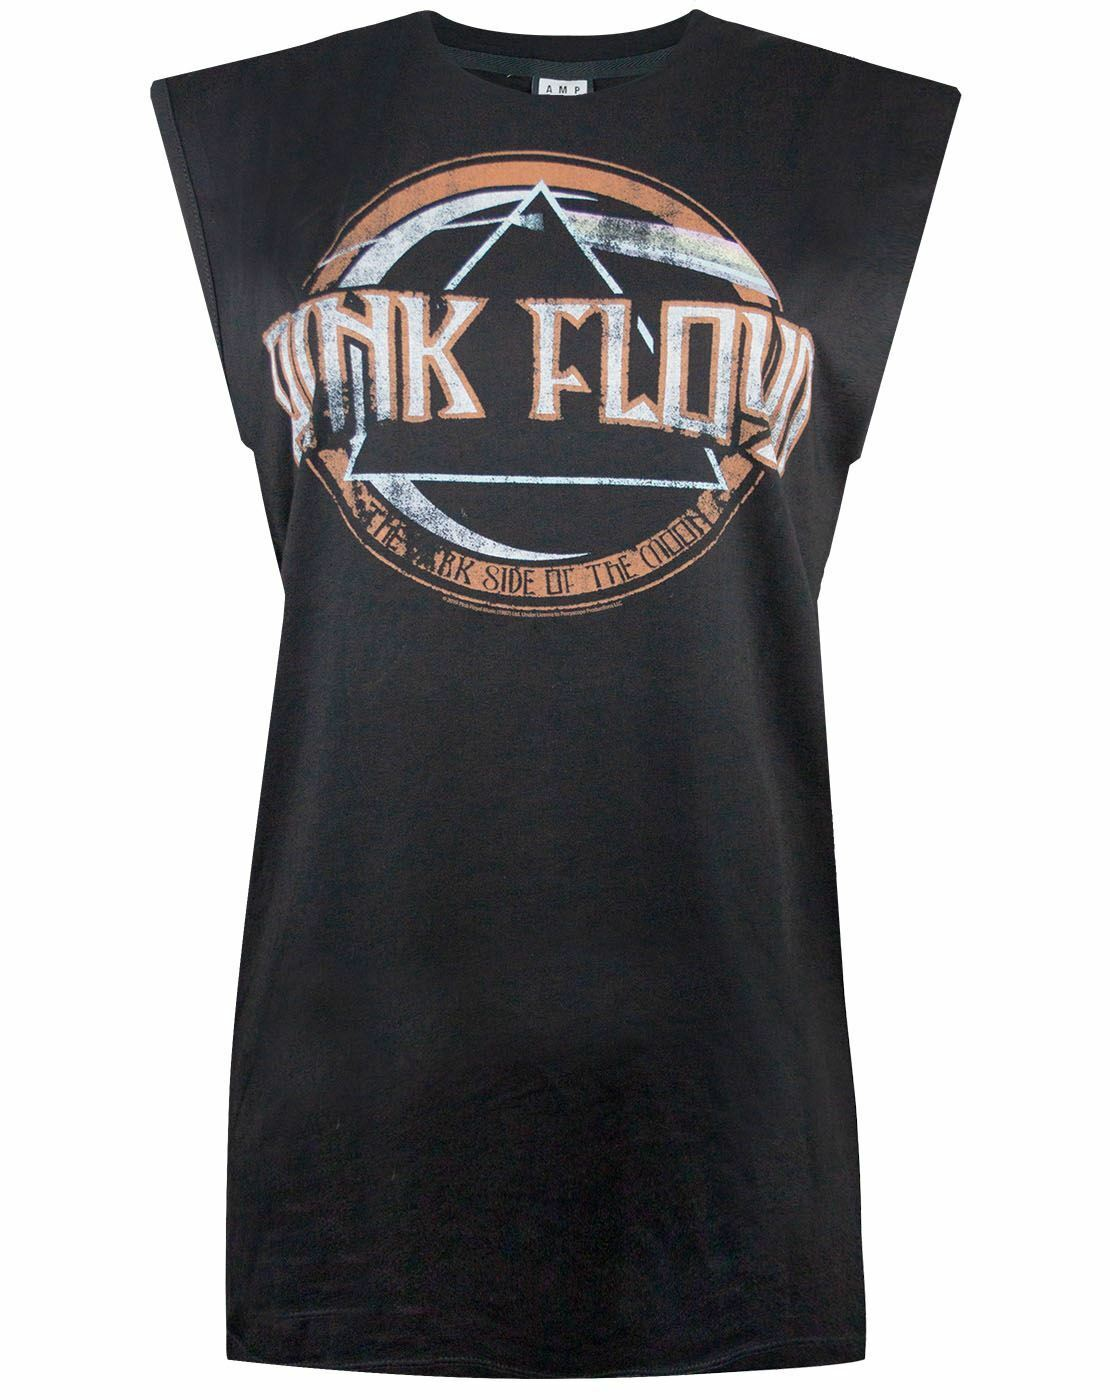 Amplified-Pink-Floyd-On-The-Run-Women-039-s-Sleeveless-T-Shirt thumbnail 9